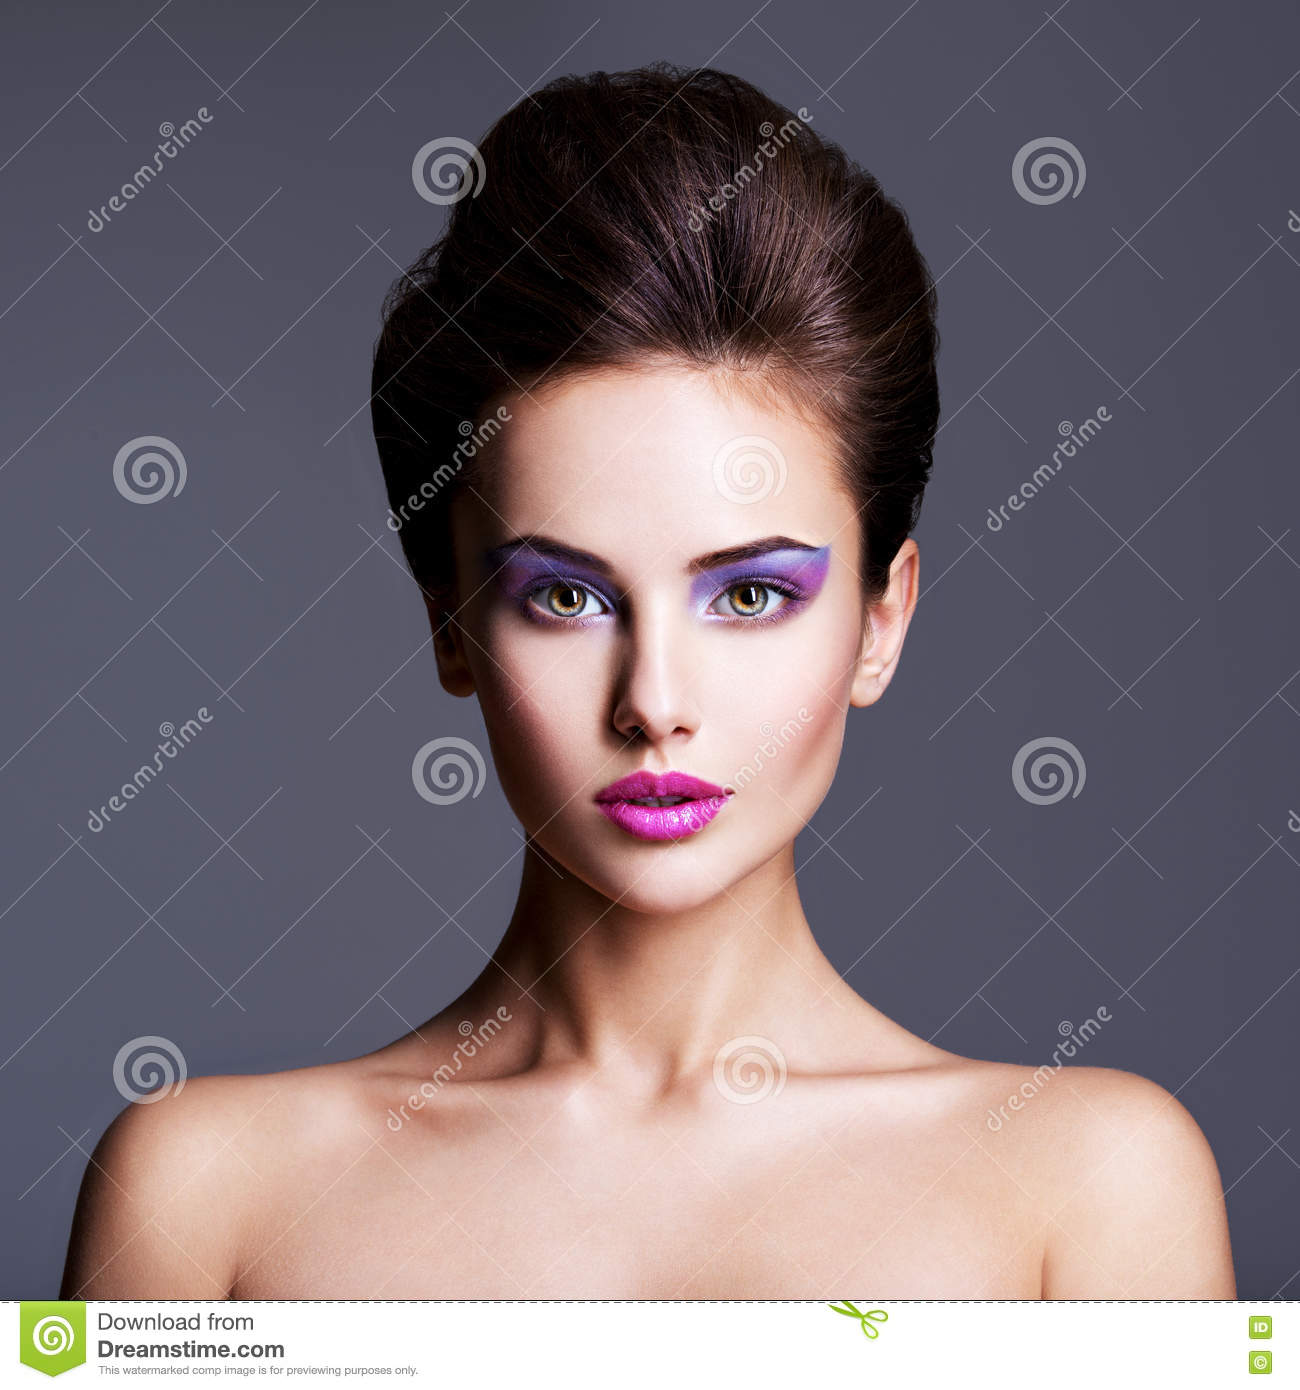 Fashion portrait of a beautiful girl with creative hairstyle an